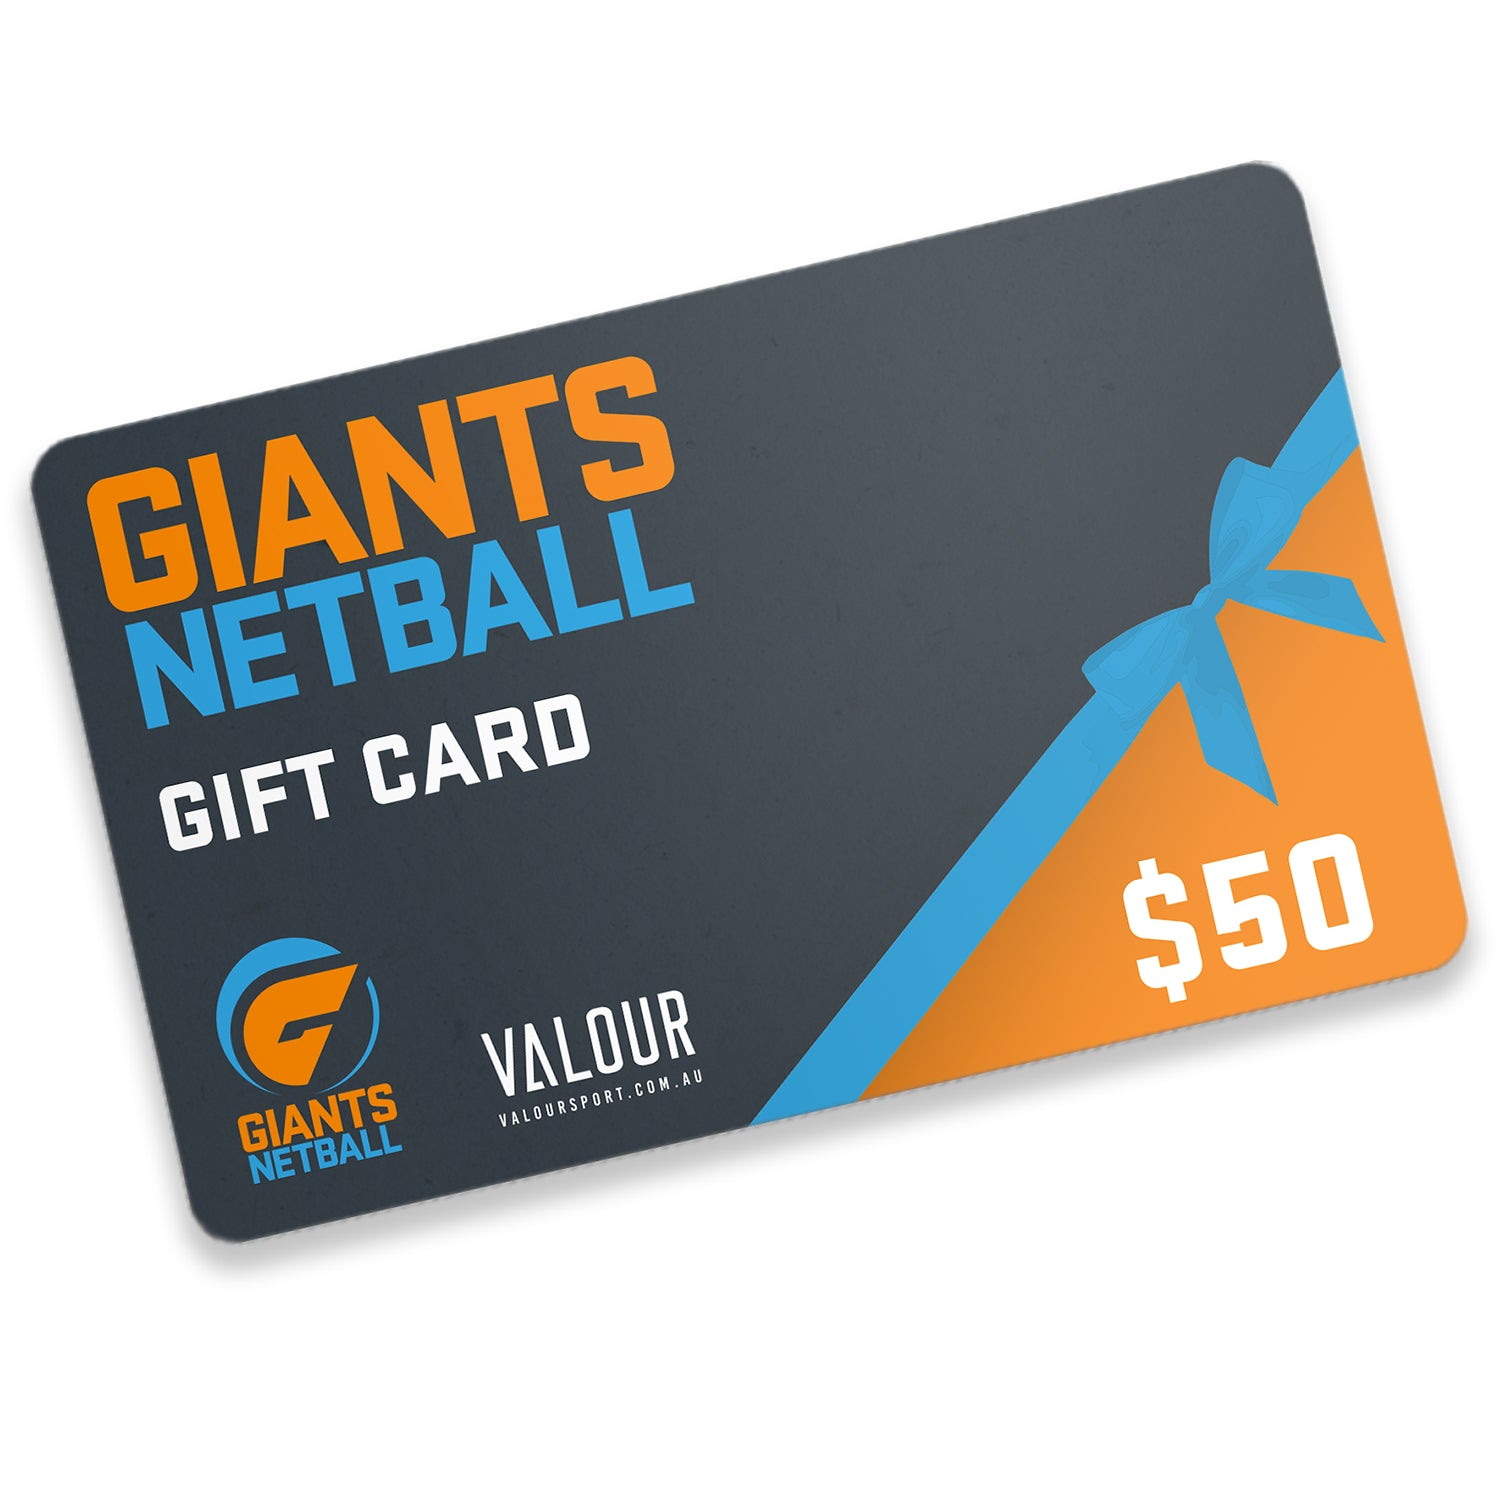 Giants Netball  $50 Gift Card